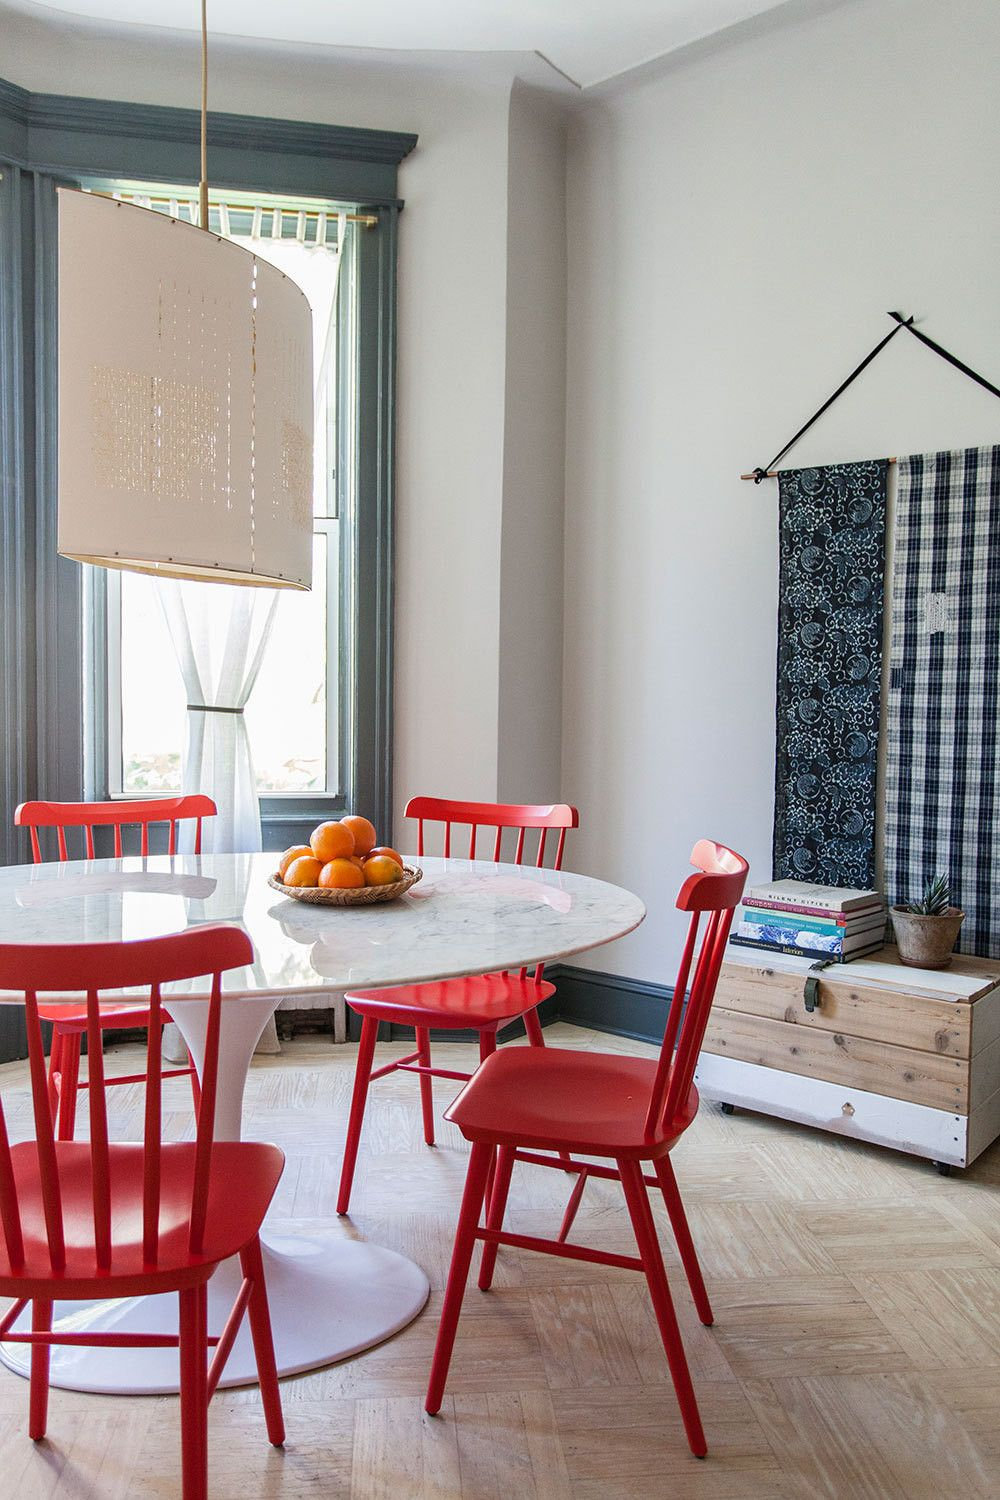 Shaker Style Chairs From Design Within Reach Add A Burst Of Color To The Crisp White Saarinen Tulip Table In Dining Room